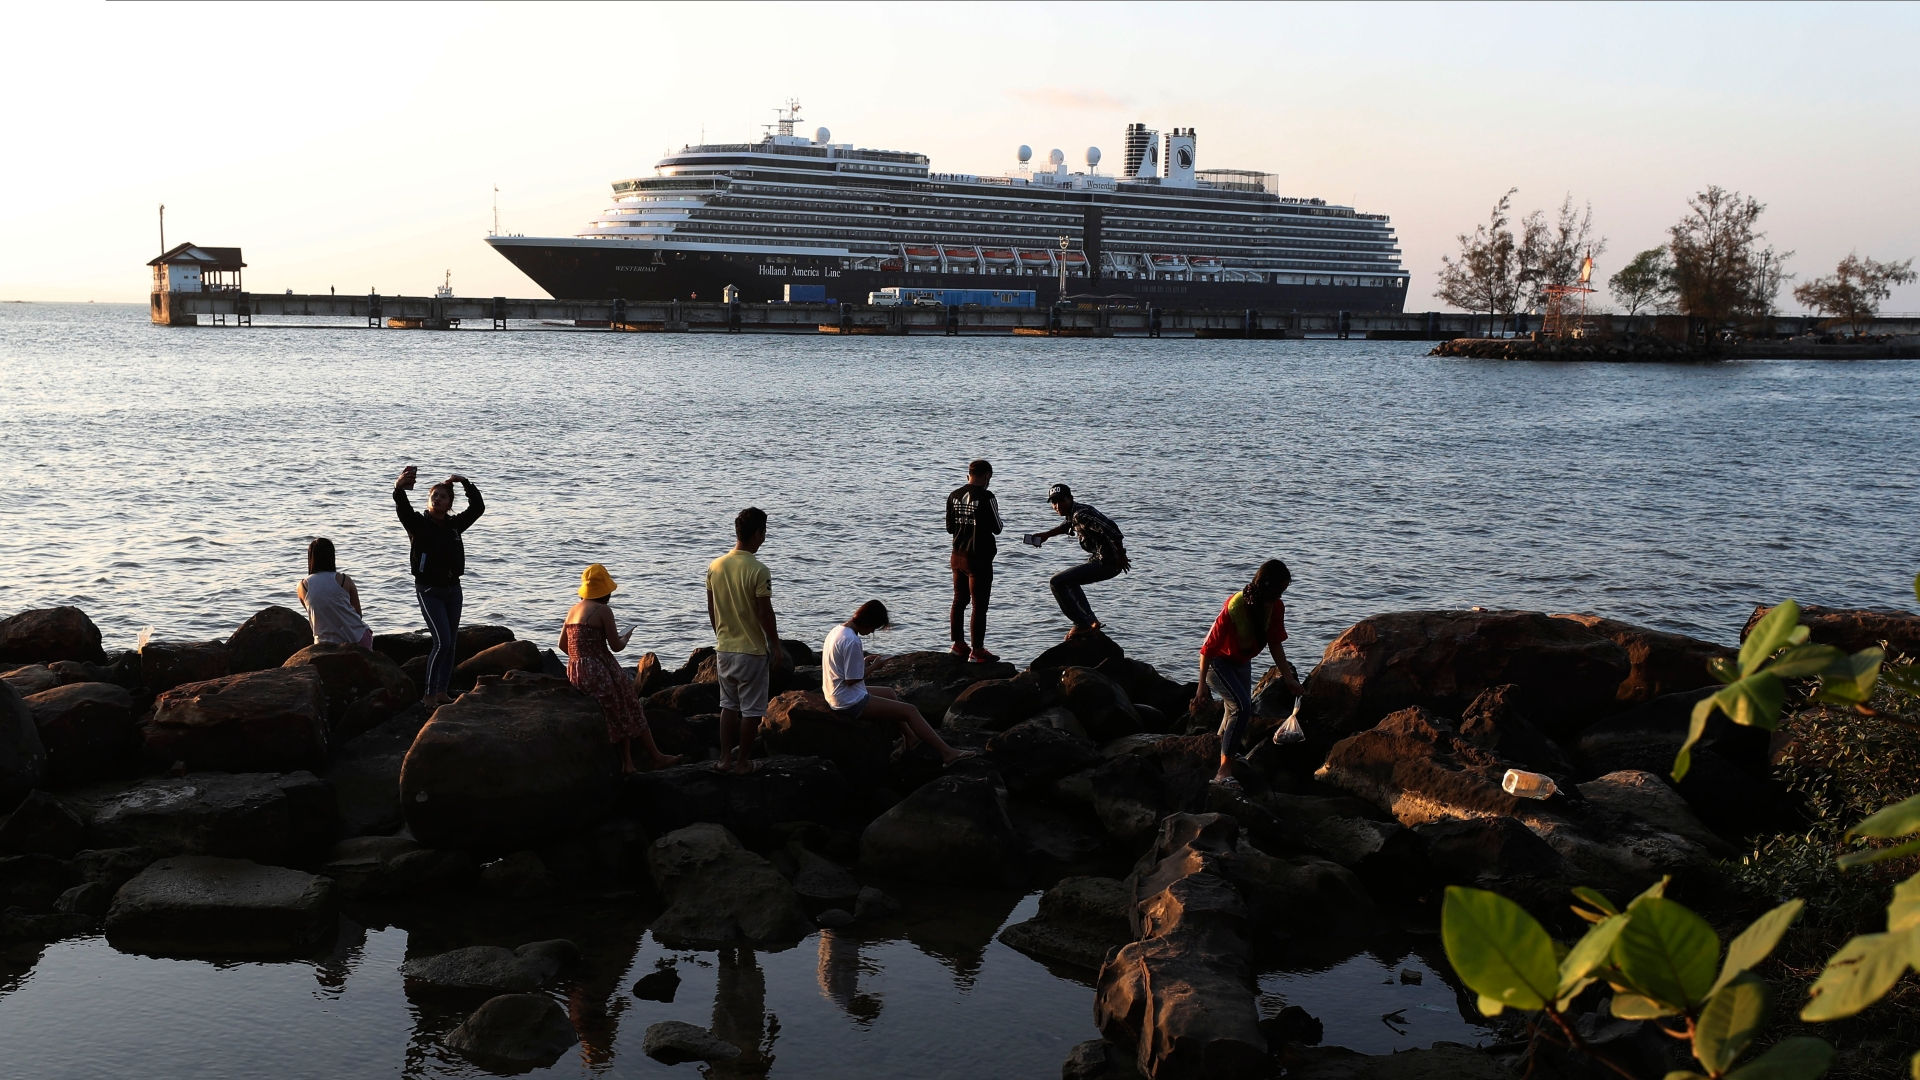 Photos show passengers finally disembark cruise ship that was stranded at sea over coronavirus fears